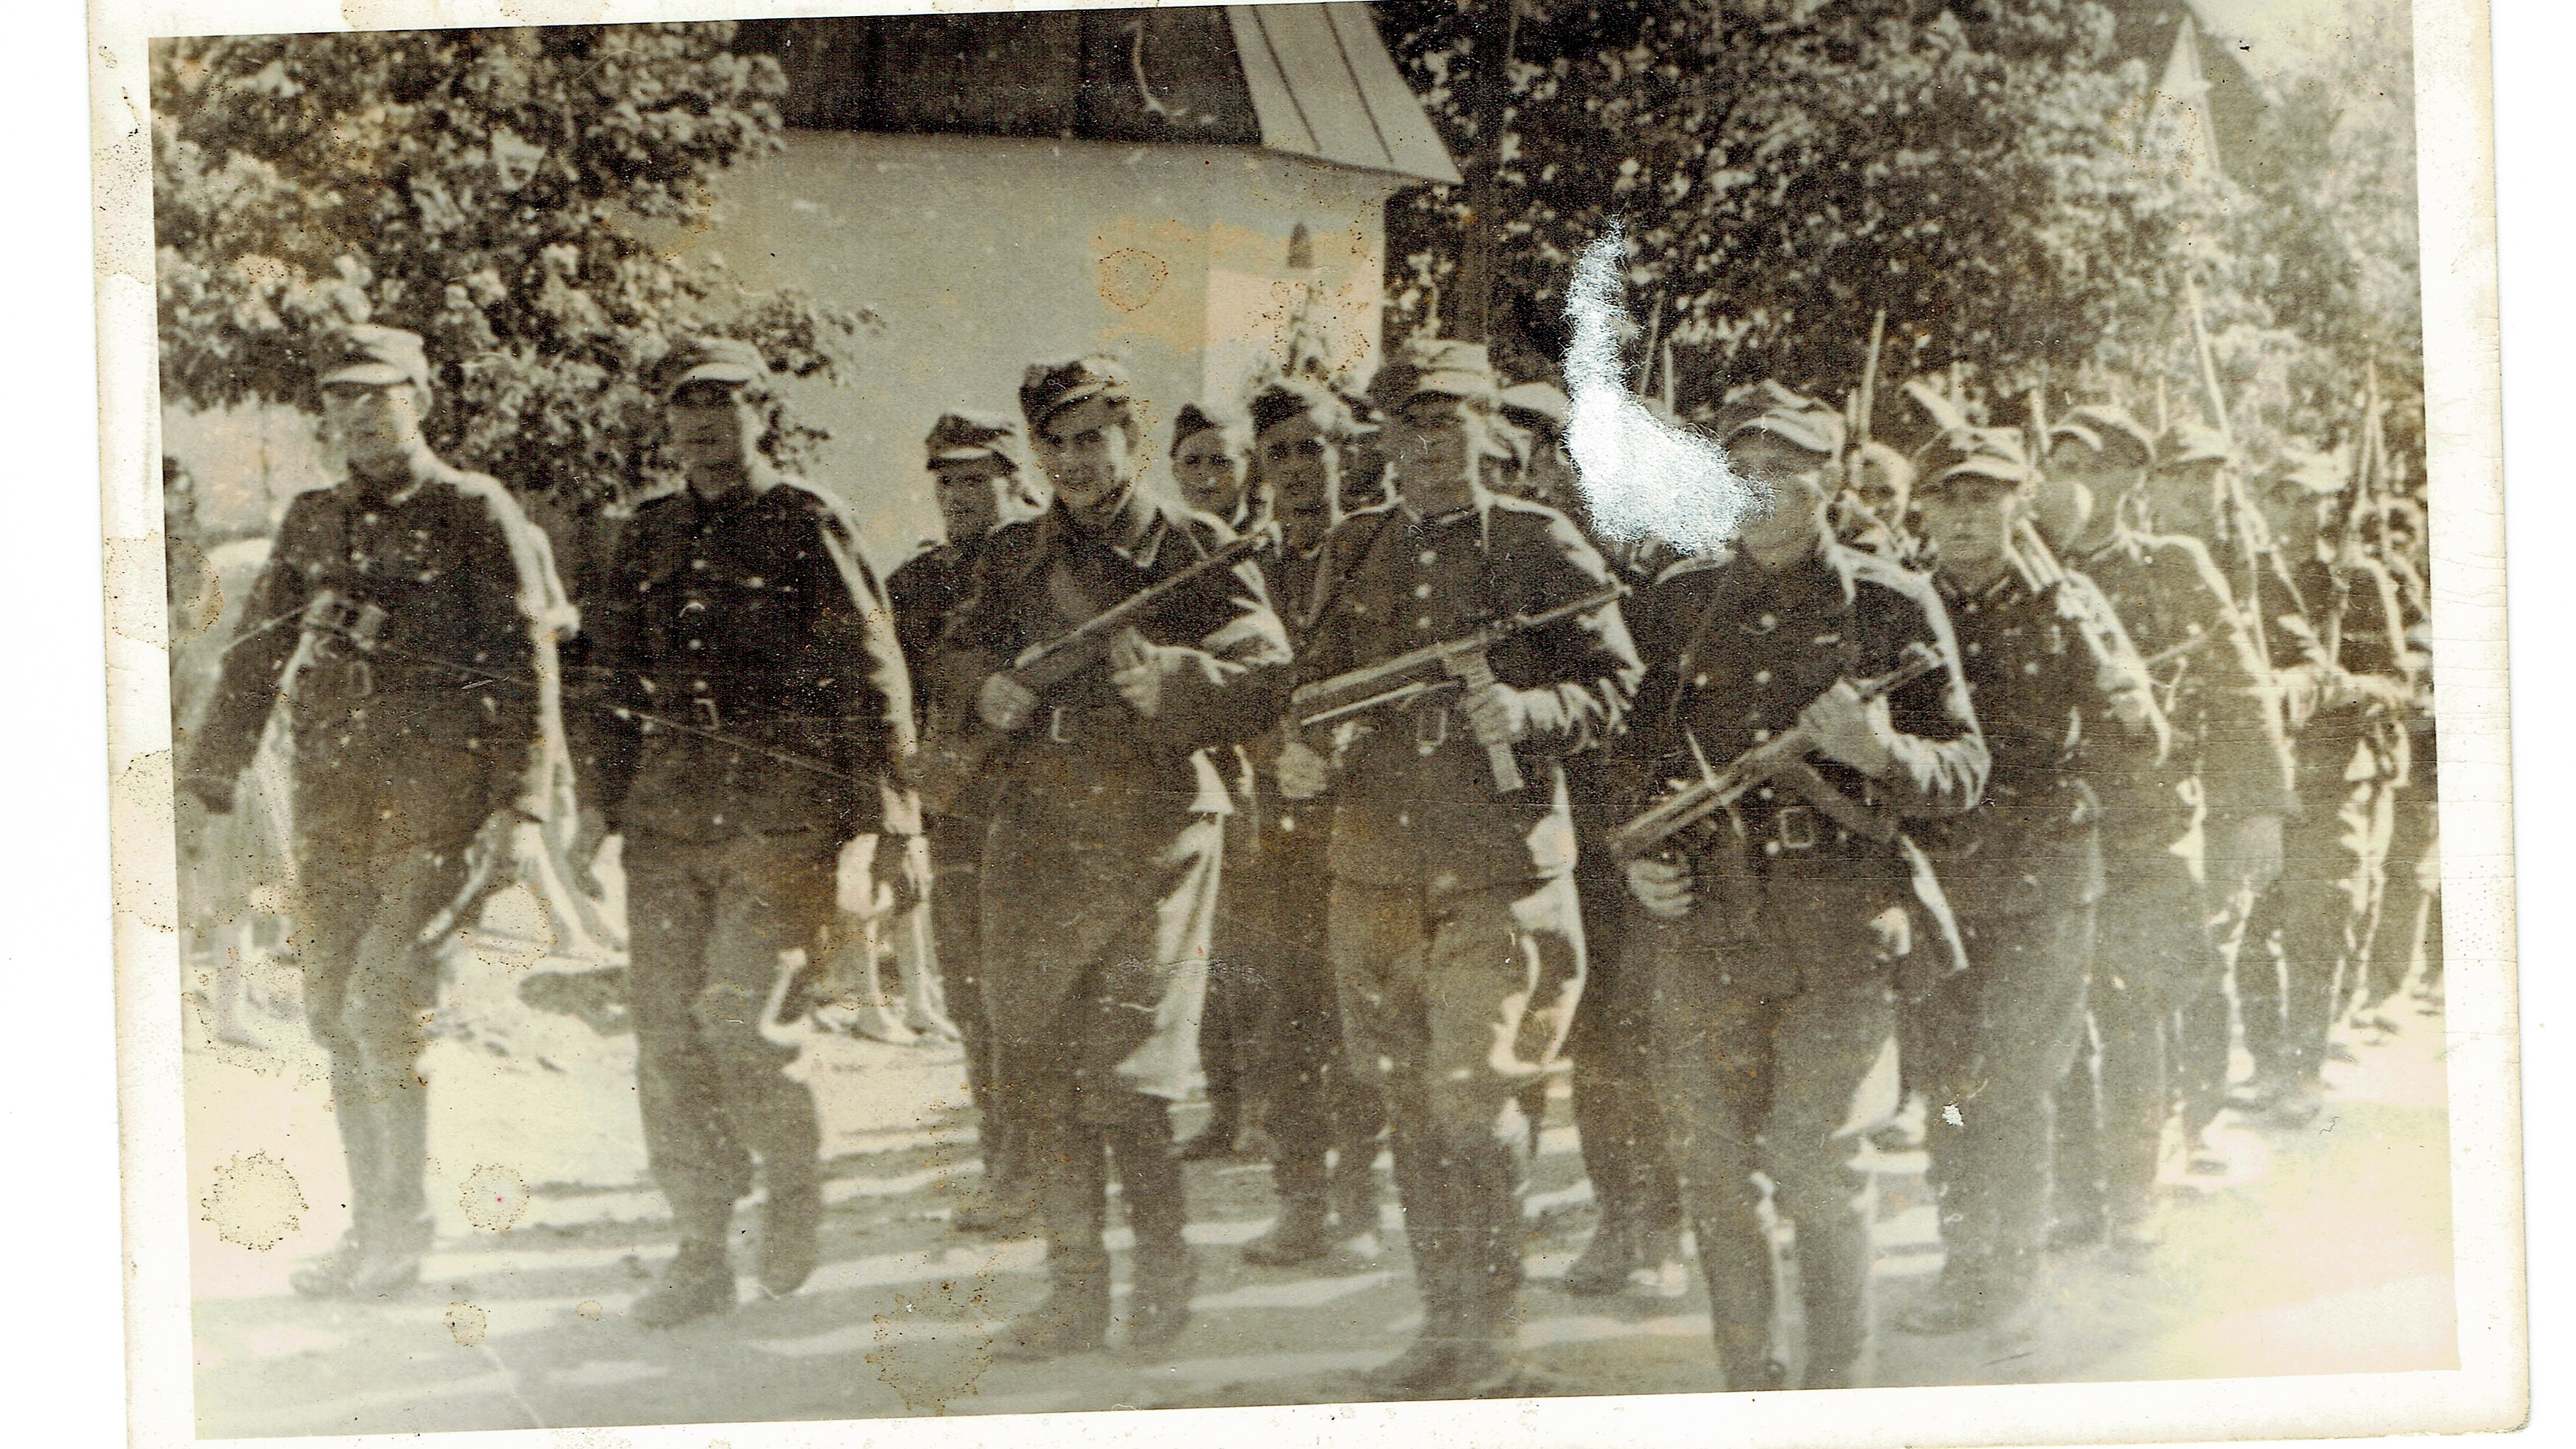 WWII soldiers marching with guns